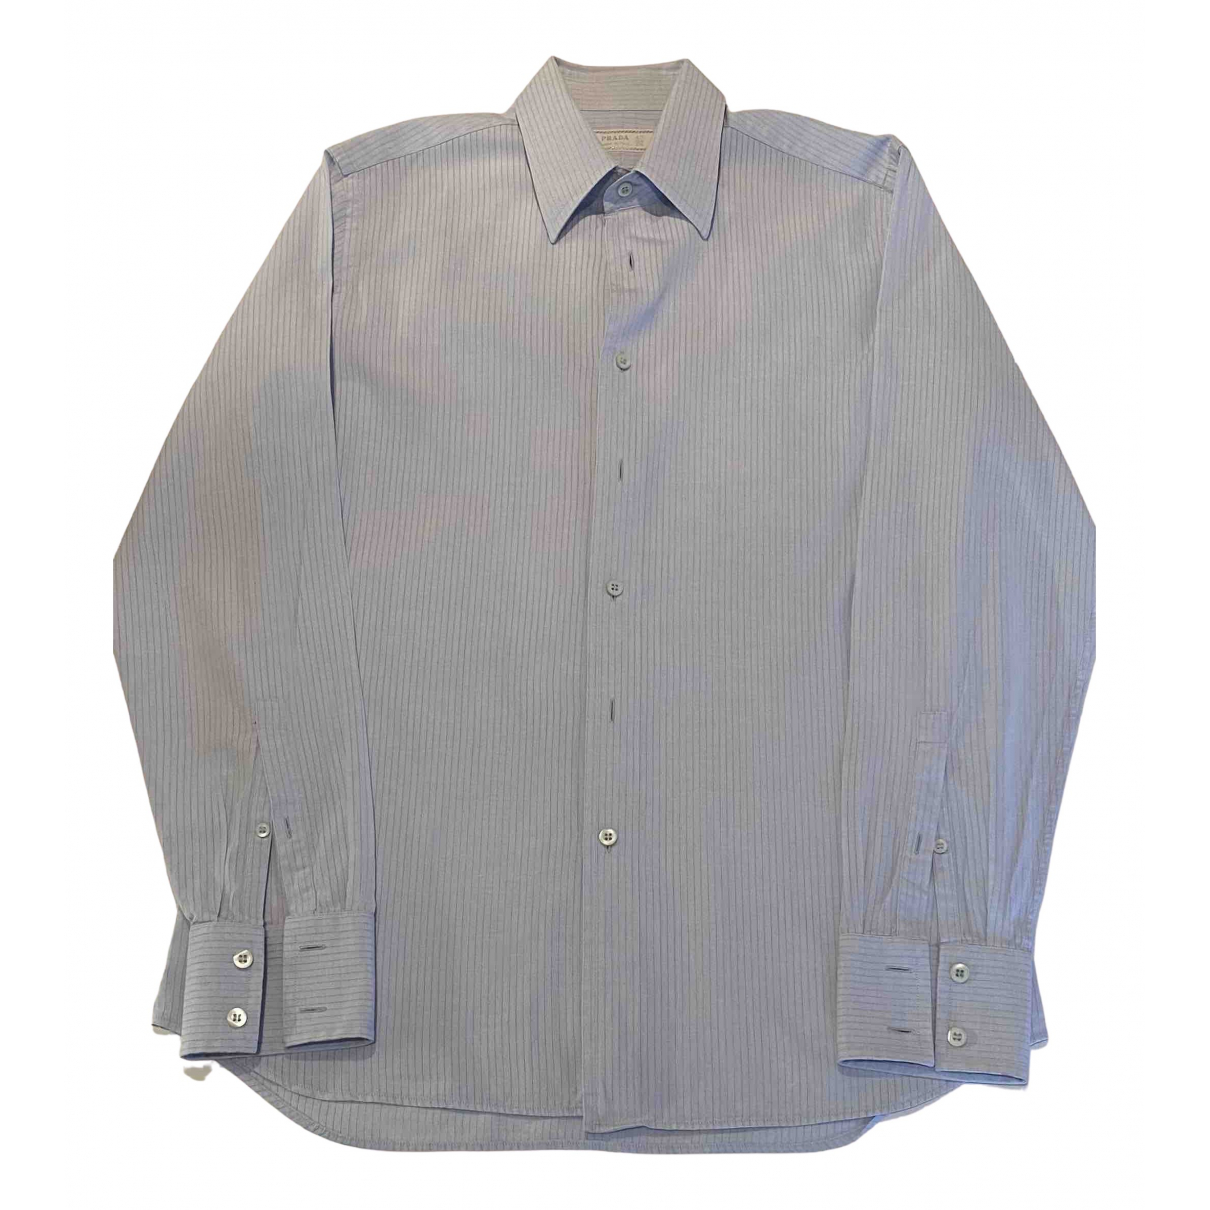 Prada \N Blue Cotton Shirts for Men 40 EU (tour de cou / collar)